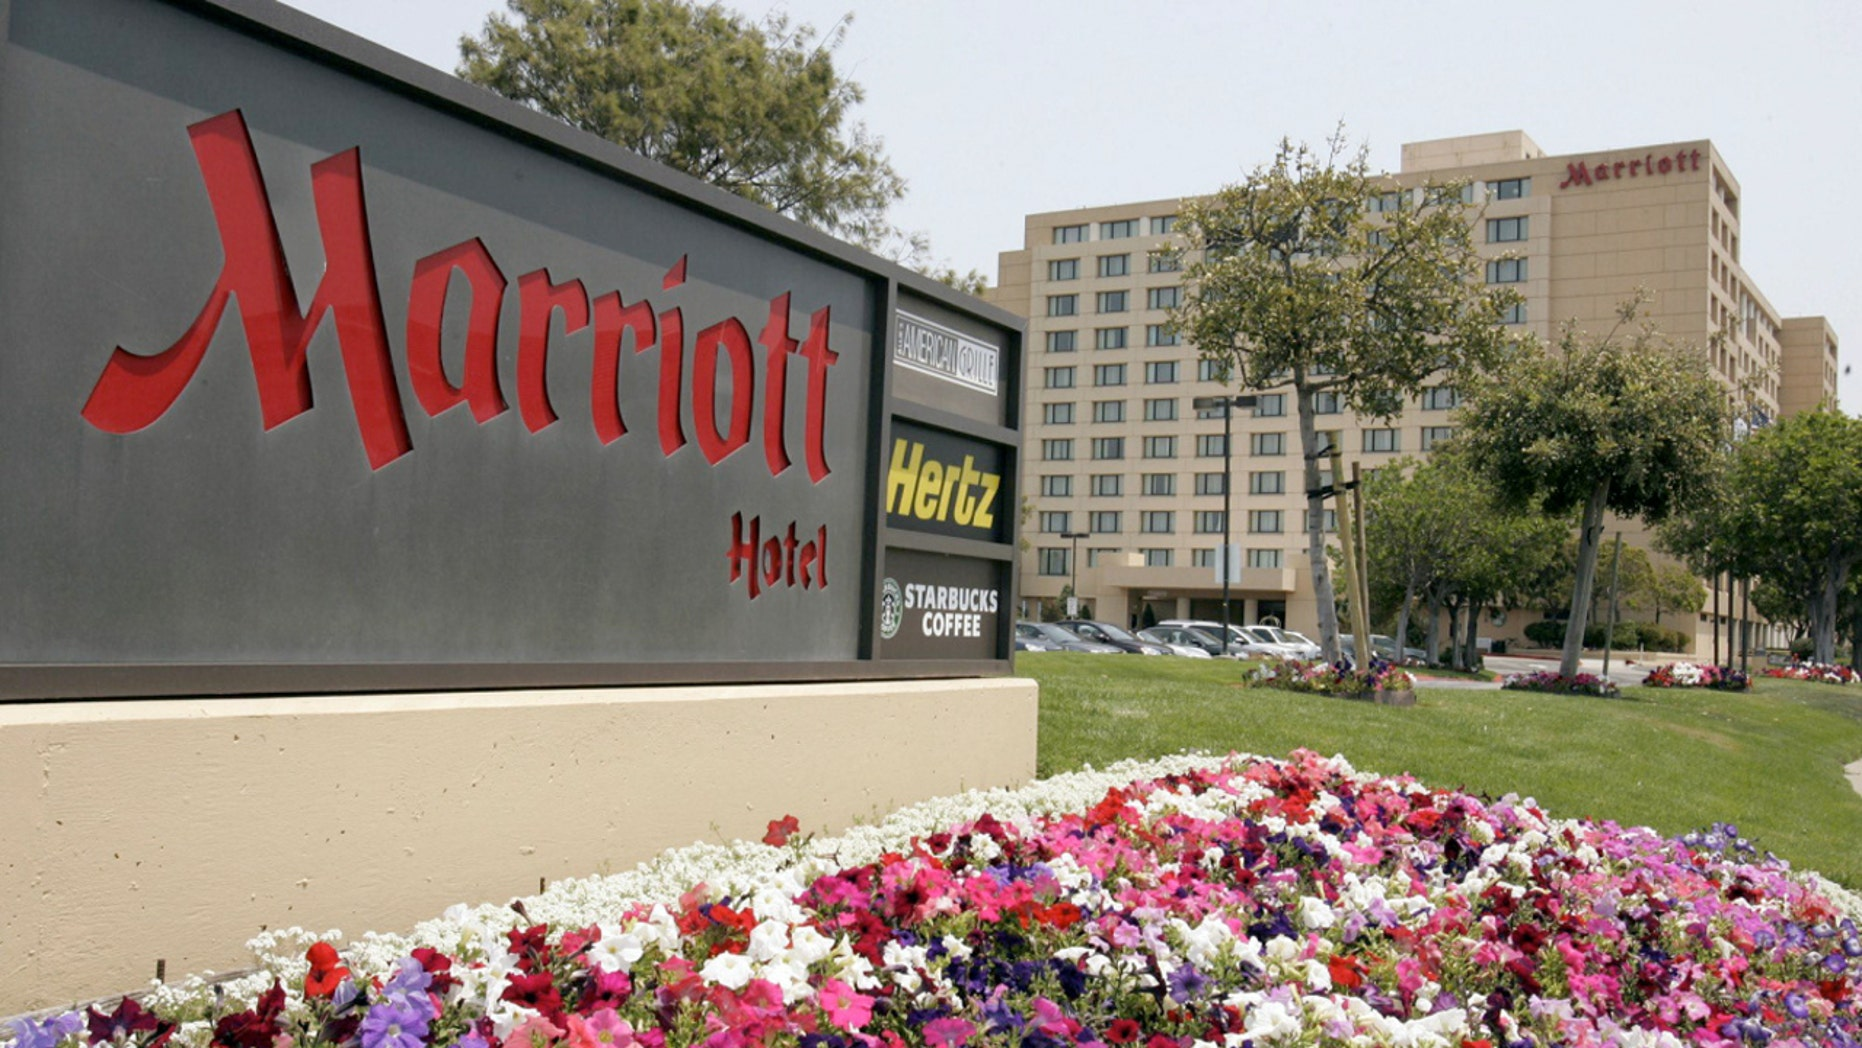 Marriott Rewards program travelers earned the equivalent value of $9.40 towards a future stay at a Marriott property, the best out of the top four hotels surveyed.